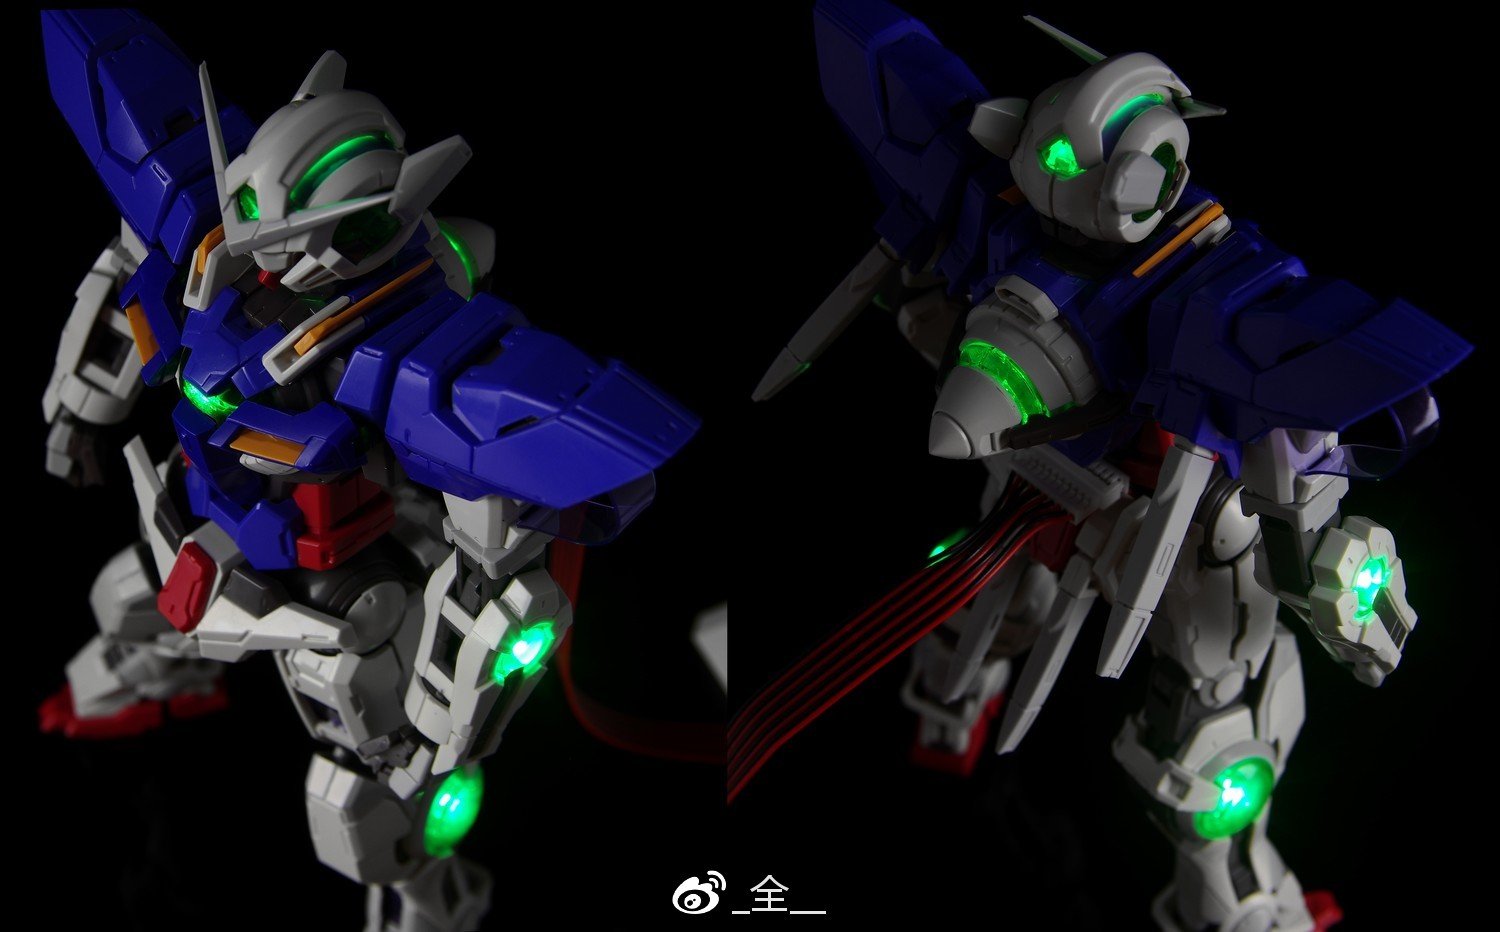 S269_mg_exia_led_hobby_star_inask_057.jpg